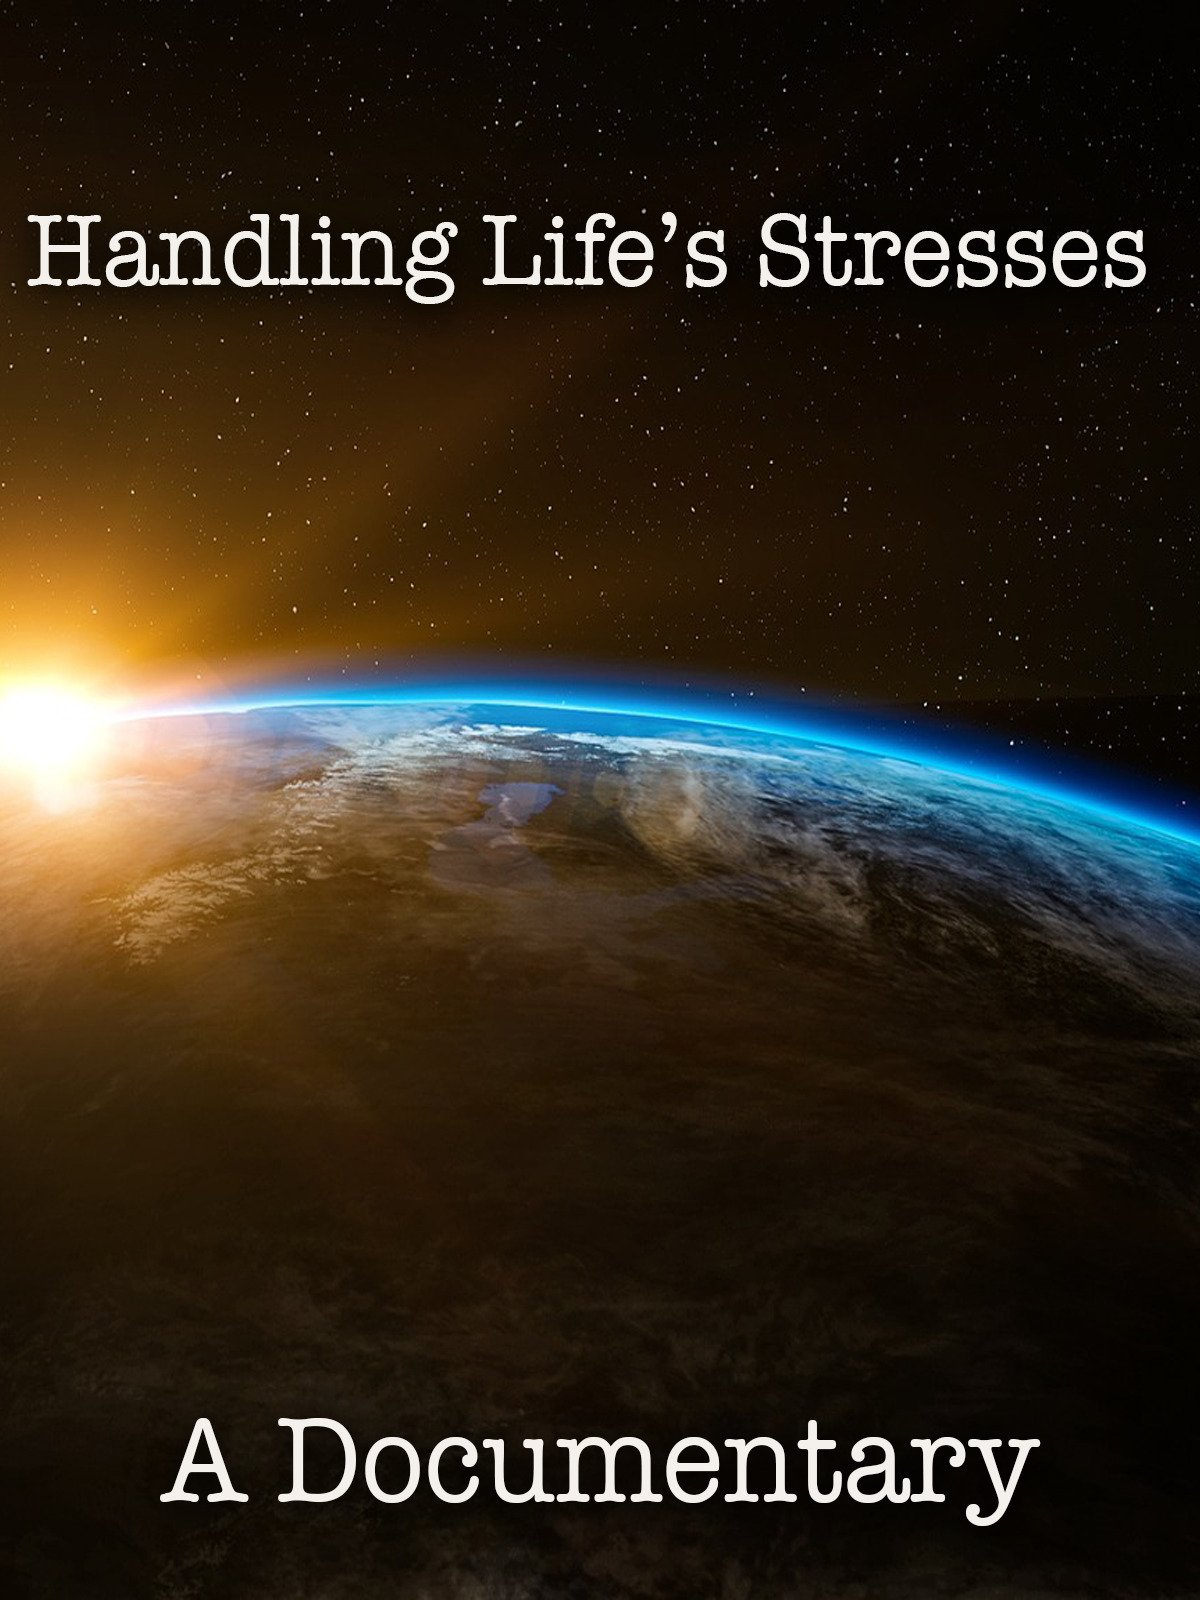 Handling Life's Stresses A Documentary